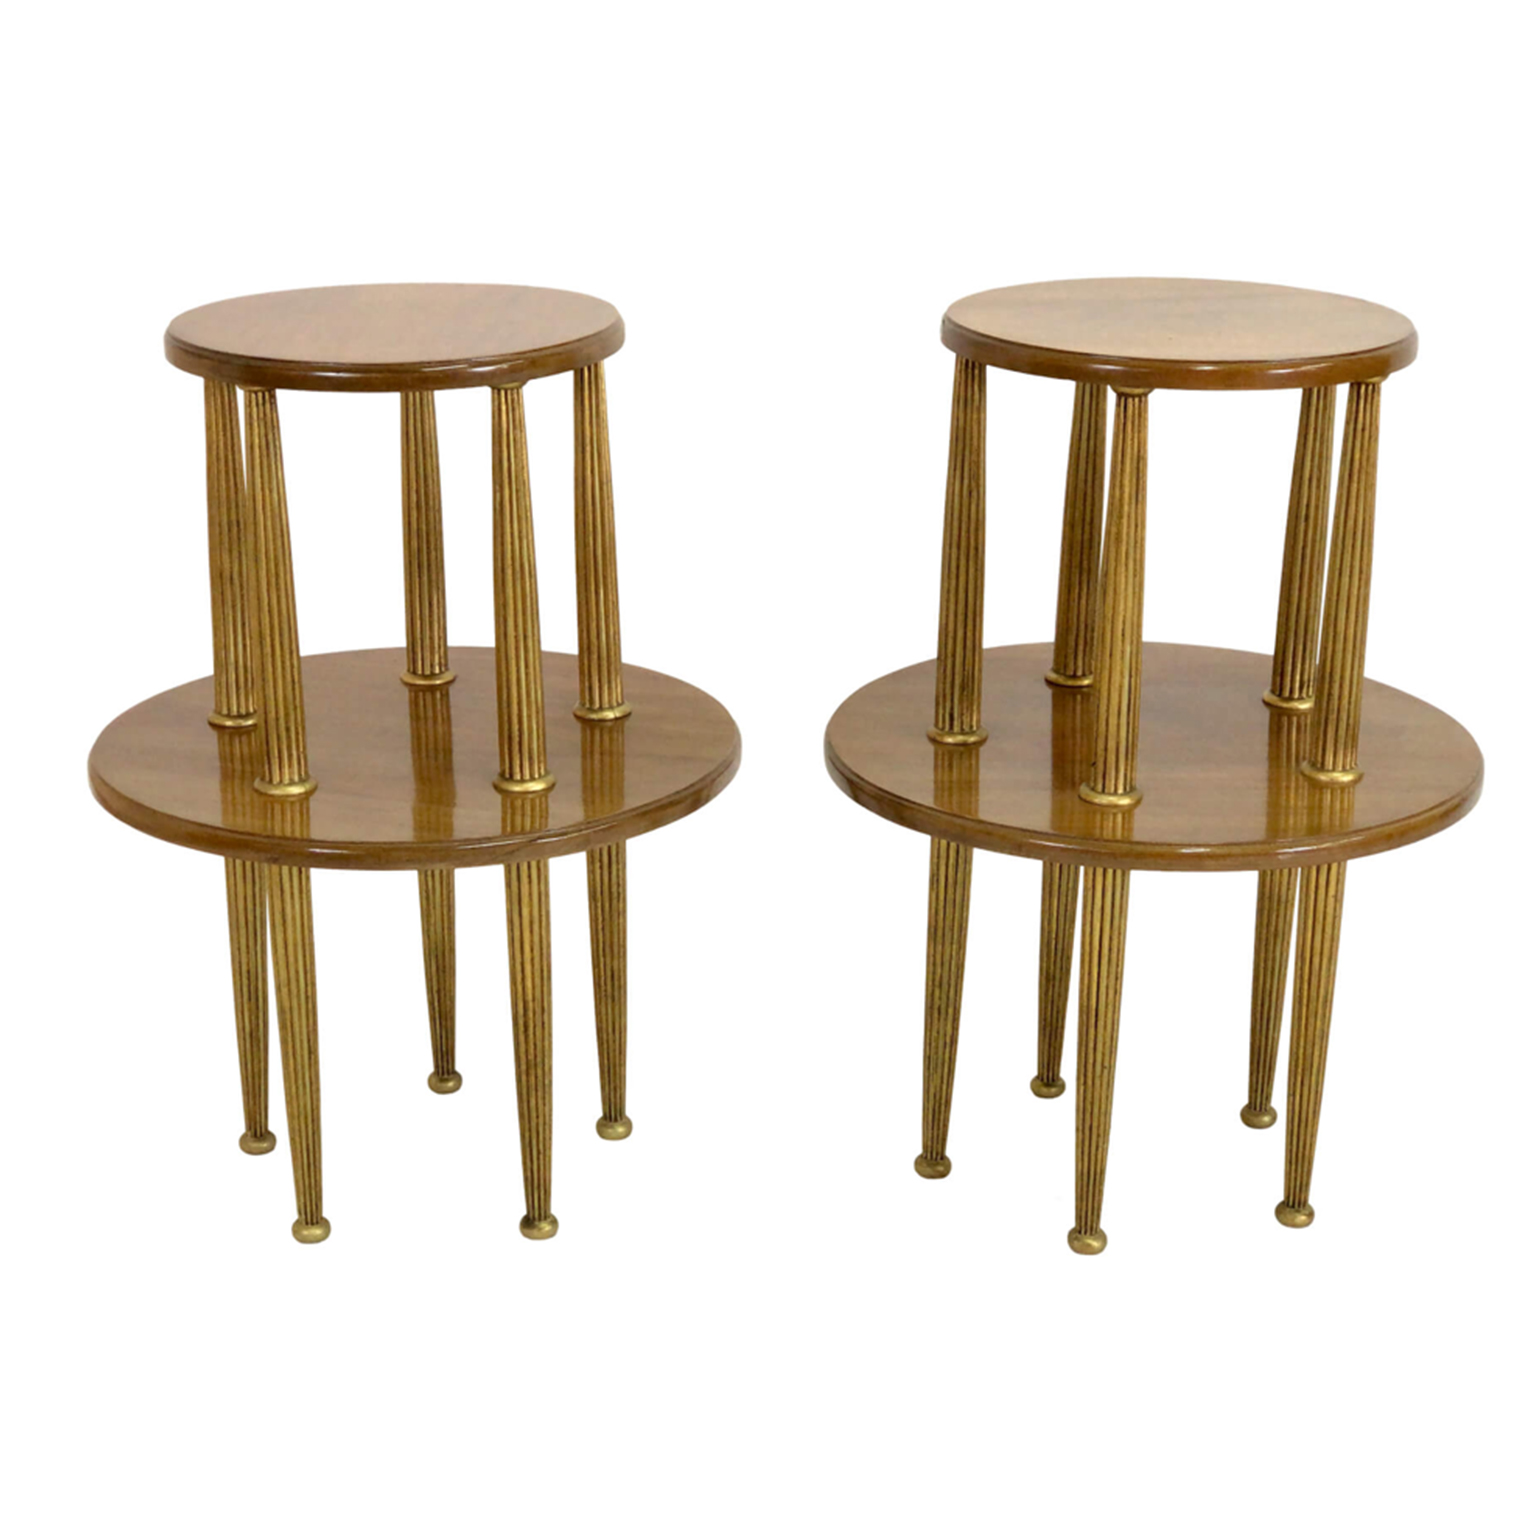 A set of Art Deco side tables in light brown mahogany wood with gold fluted legs.